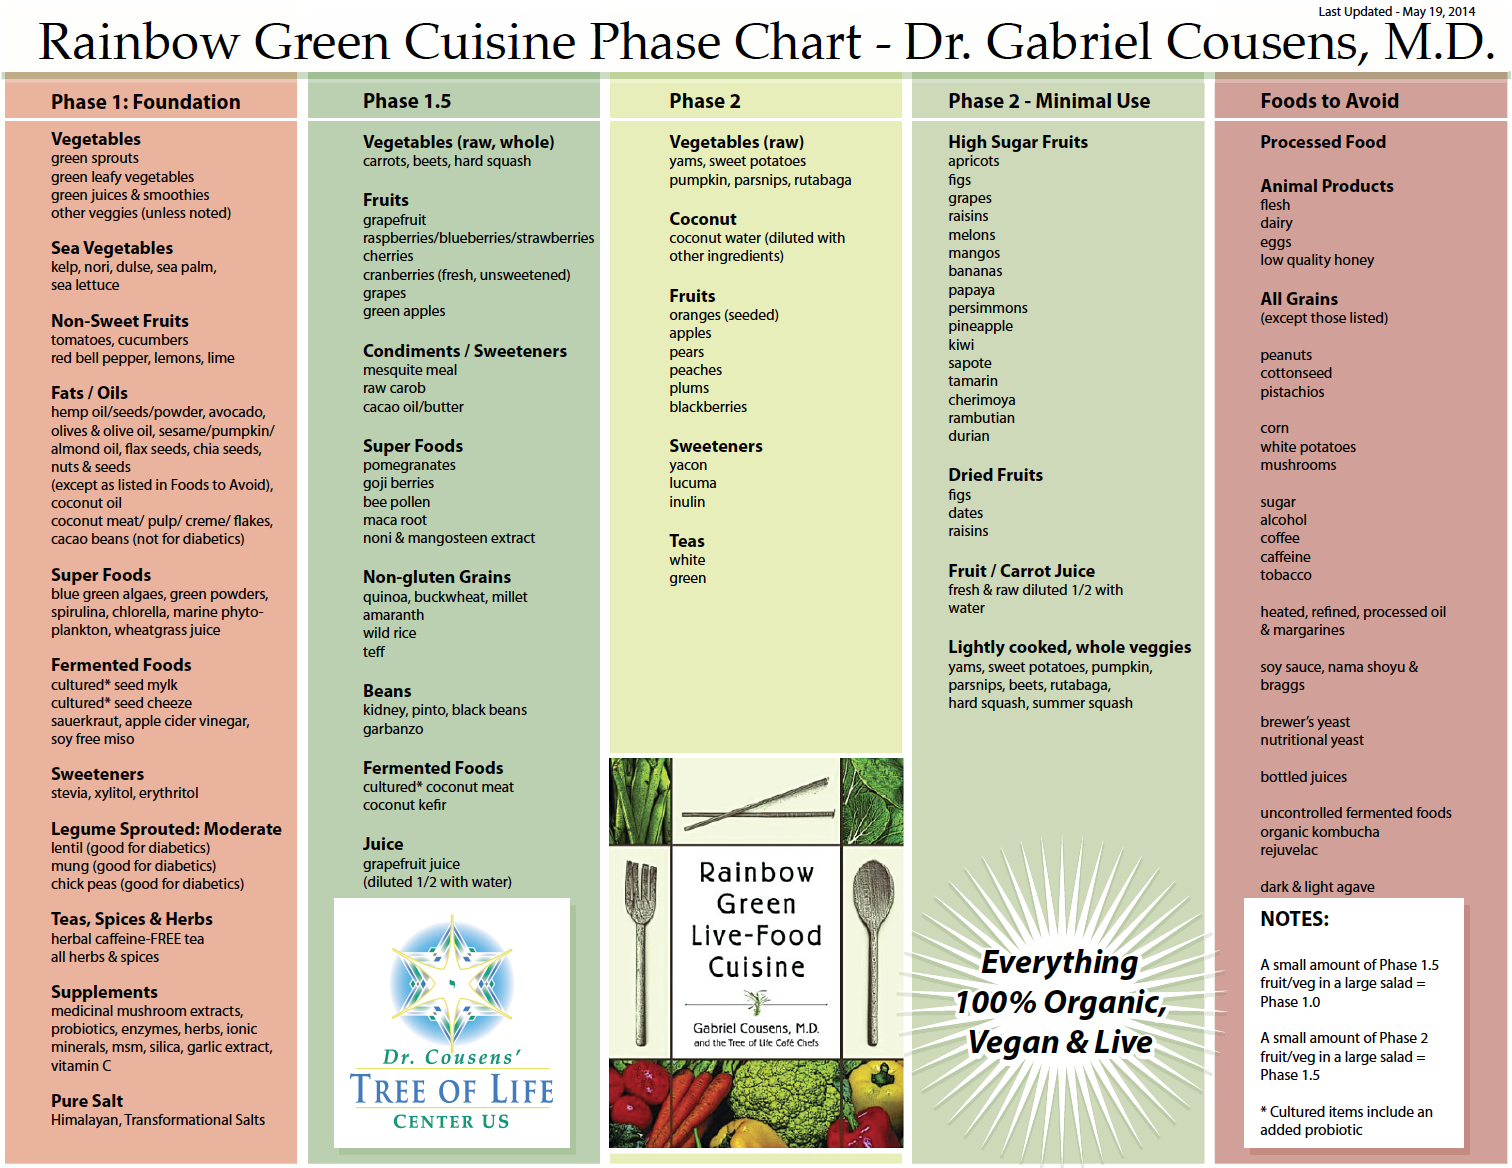 rainbow green food phases chart - By Dr. Gabriel Cousens, M.D.A 2012 Update to Dr. Cousens' Rainbow Green Food Phases chart. If you are new to the Glycemic Index of foods from a Raw/Live Plant-Based perspective, then do download this chart to learn ways to lower the glycemic load of your diet for your long-term benefit!